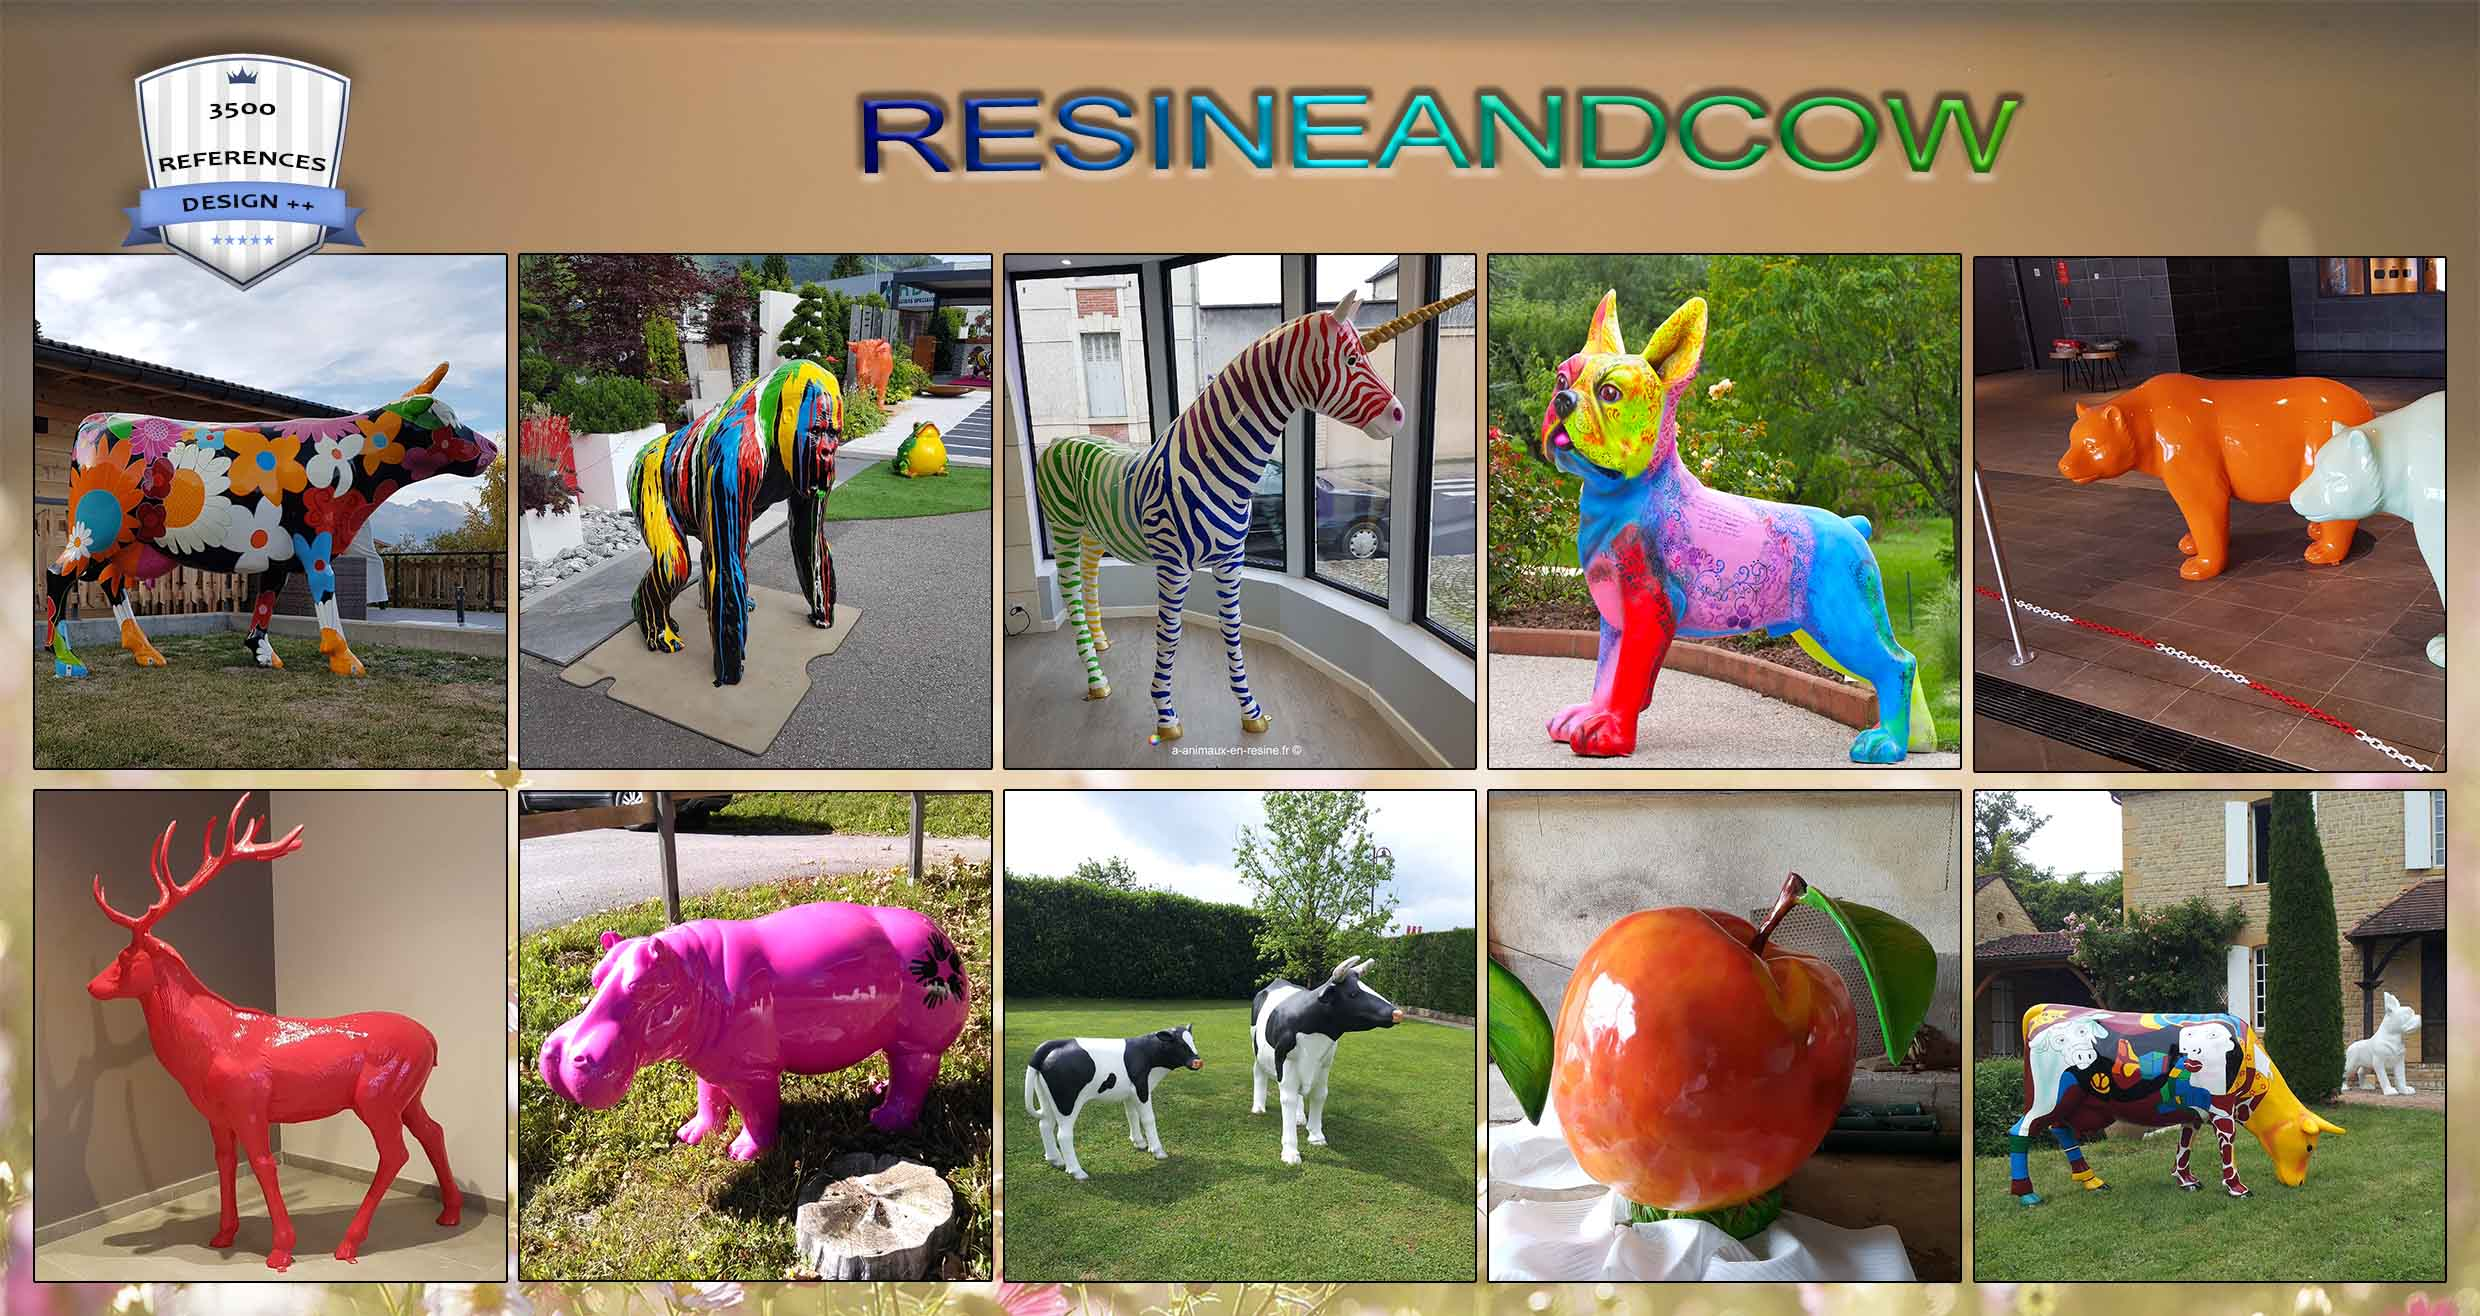 RESINEANDCOW